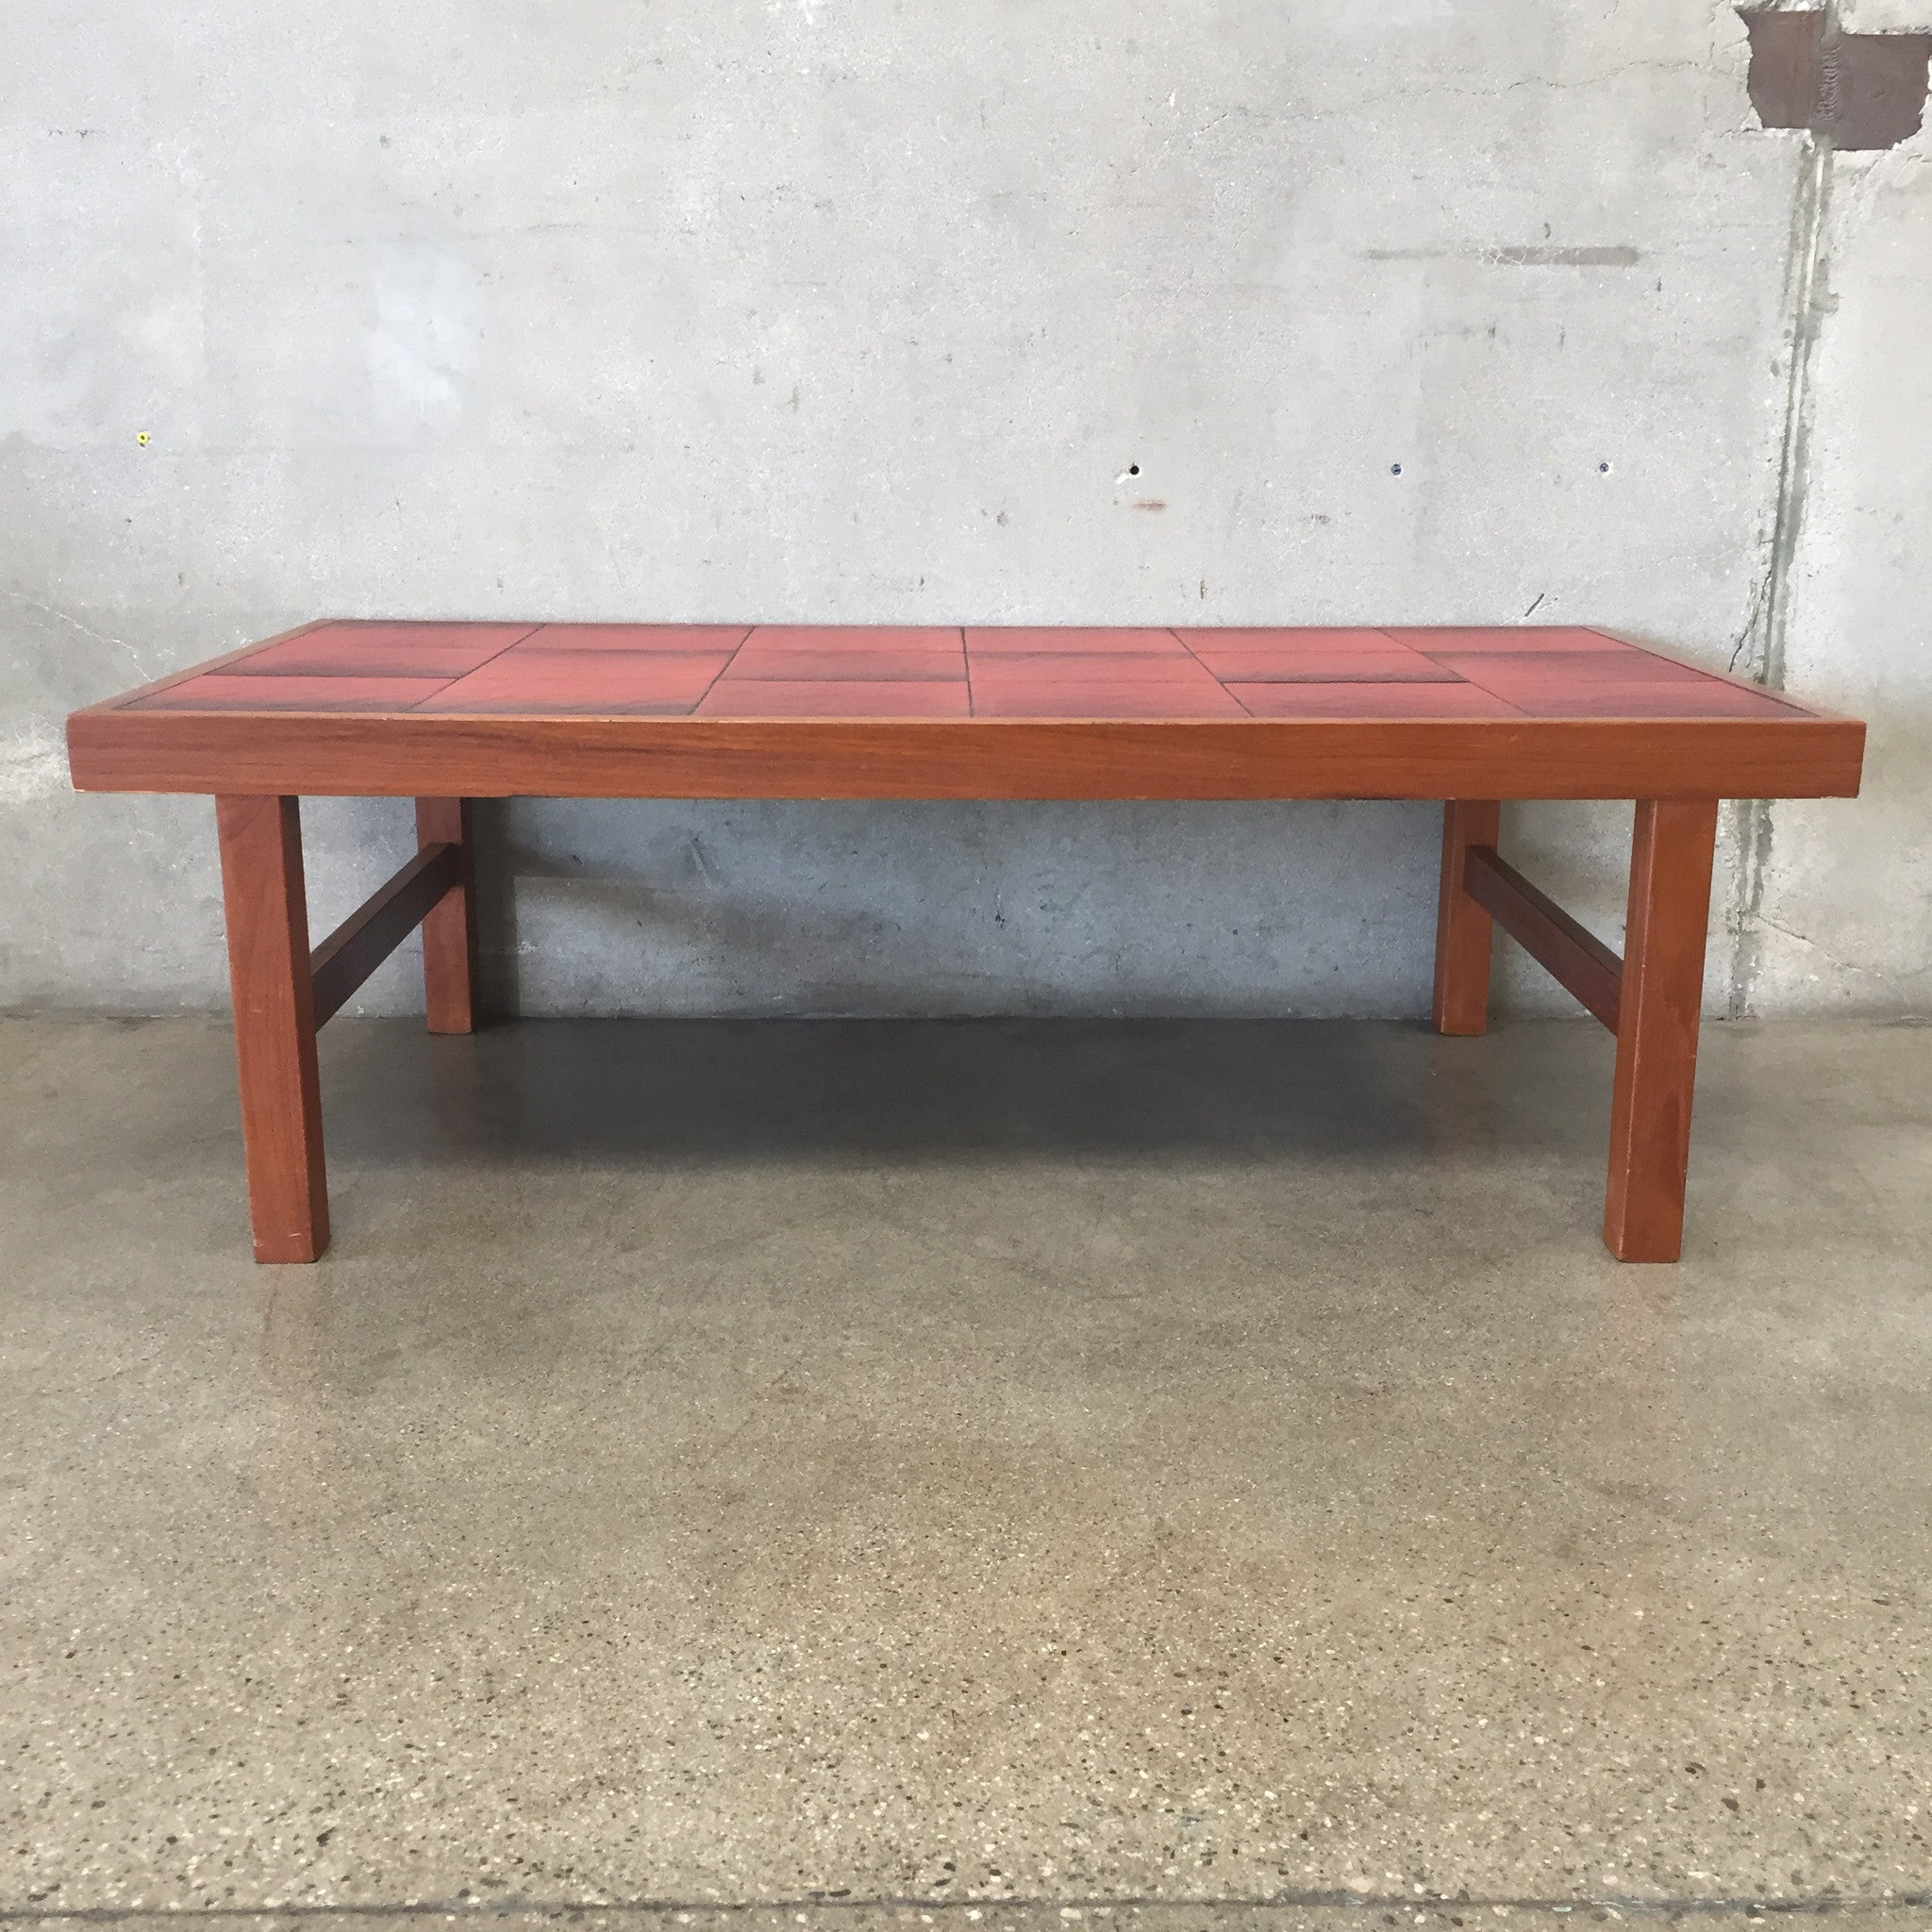 Mid Century Modern Red Tile Top Danish Coffee Table – UrbanAmericana